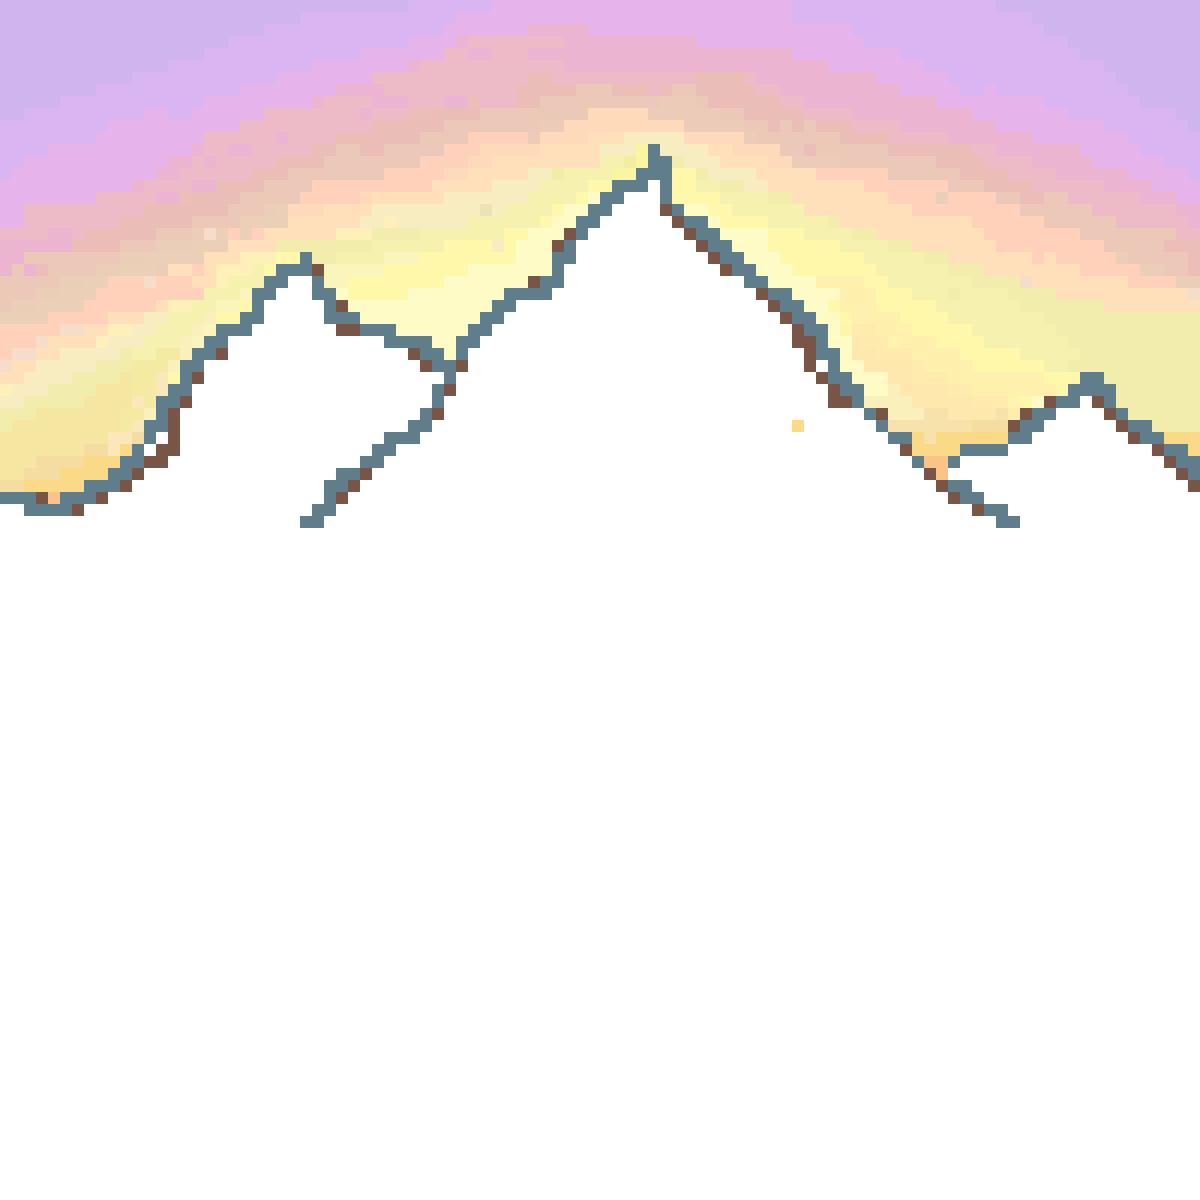 Hills clipart mountain range. Pixilart unfinished by whalecats